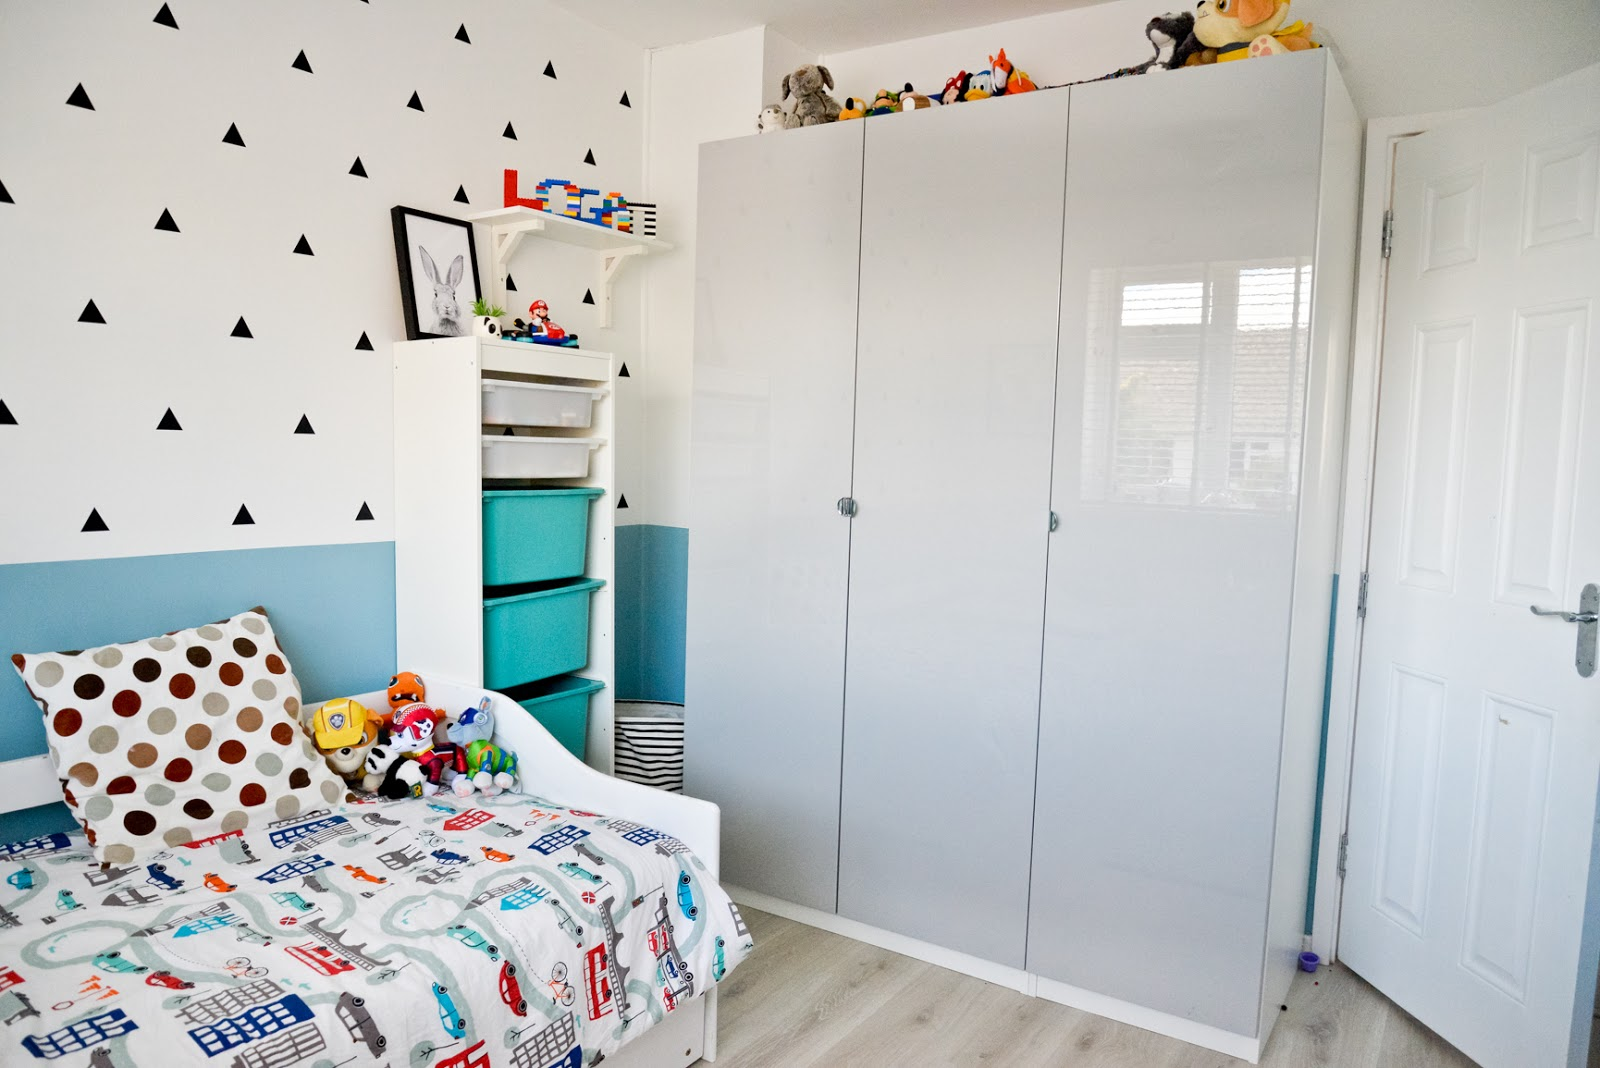 ikea pax wardrobe kids, kids modern room, kids room decor, modern kids room, kids room ideas,